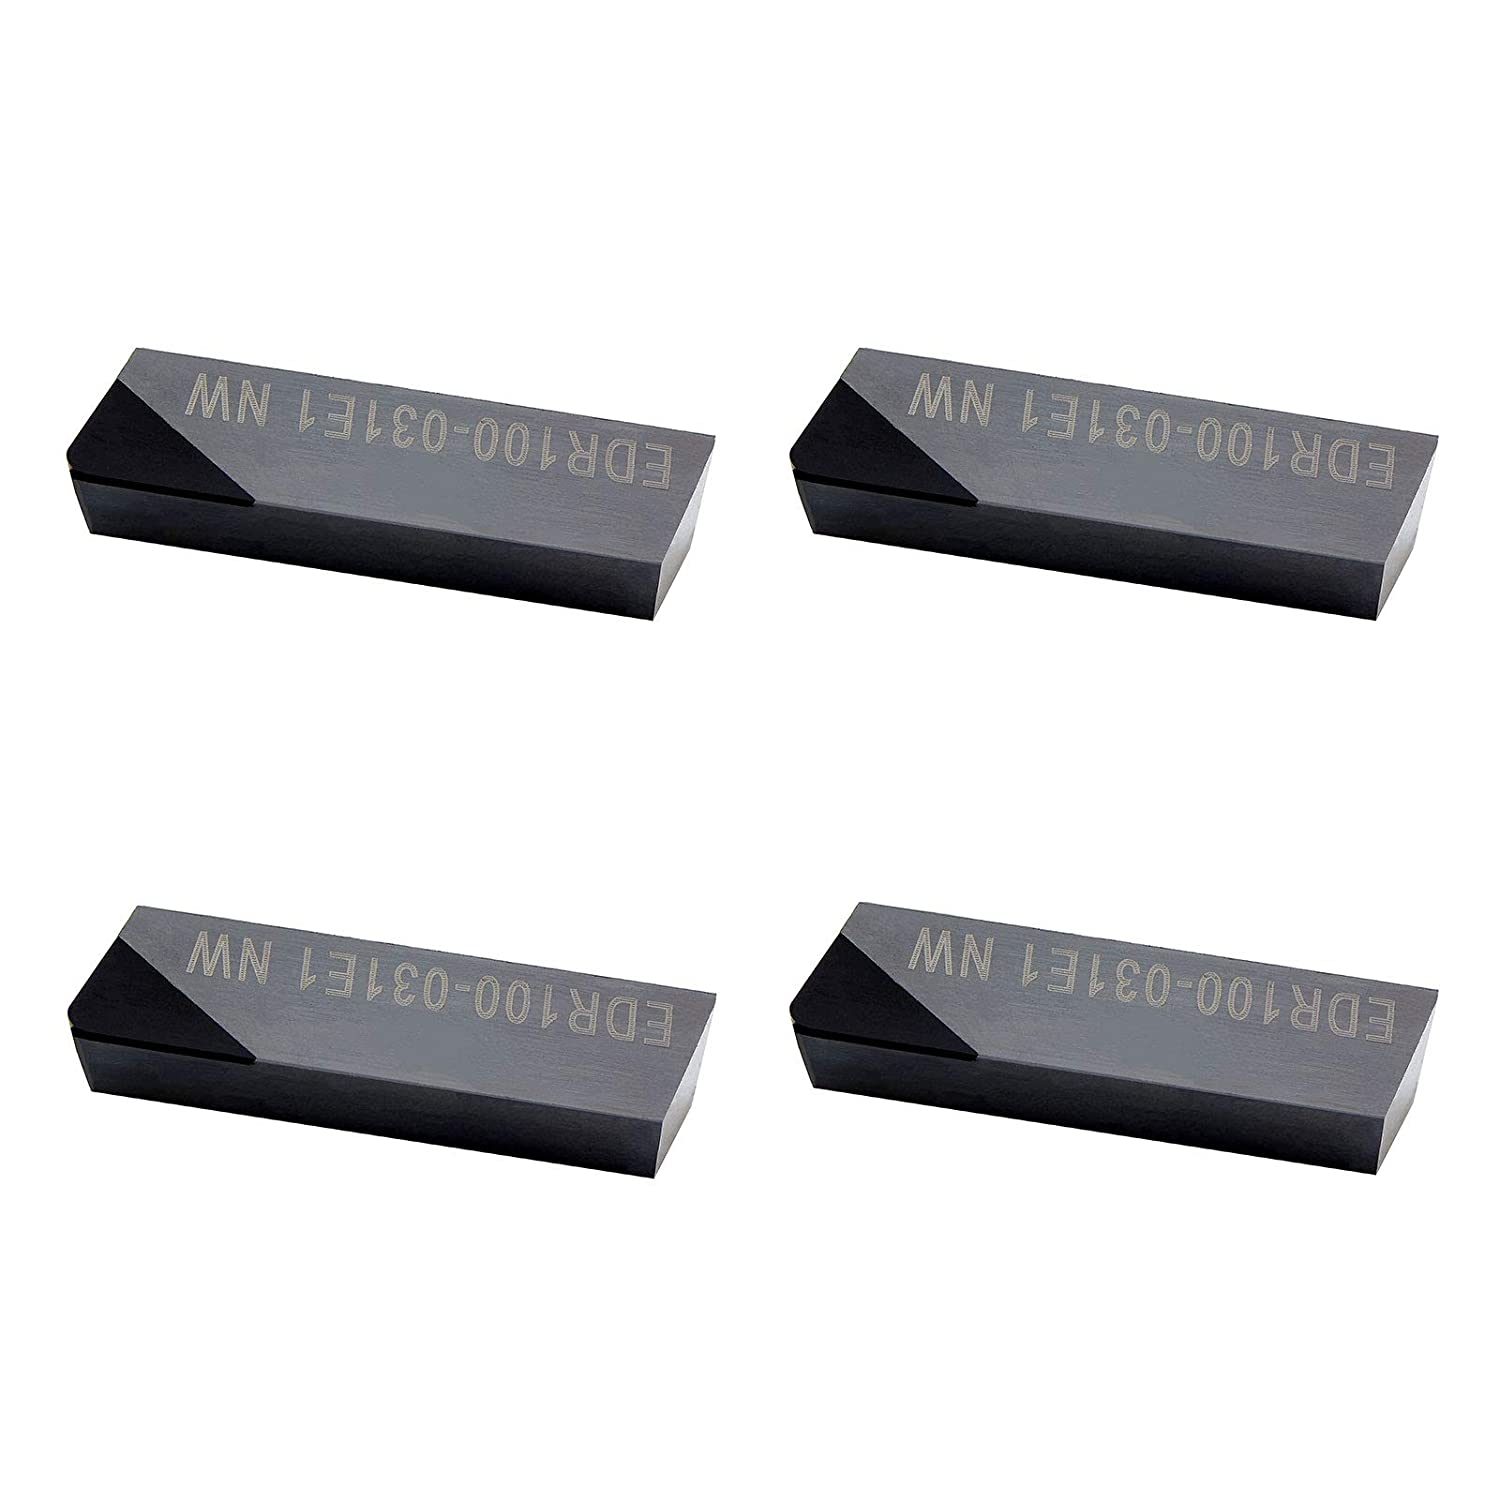 MAXTOOL 4PCs EDR100-031-E1-NW PCD Super Special SALE held Tip DOV-LOK Sale Milling Inserts Po